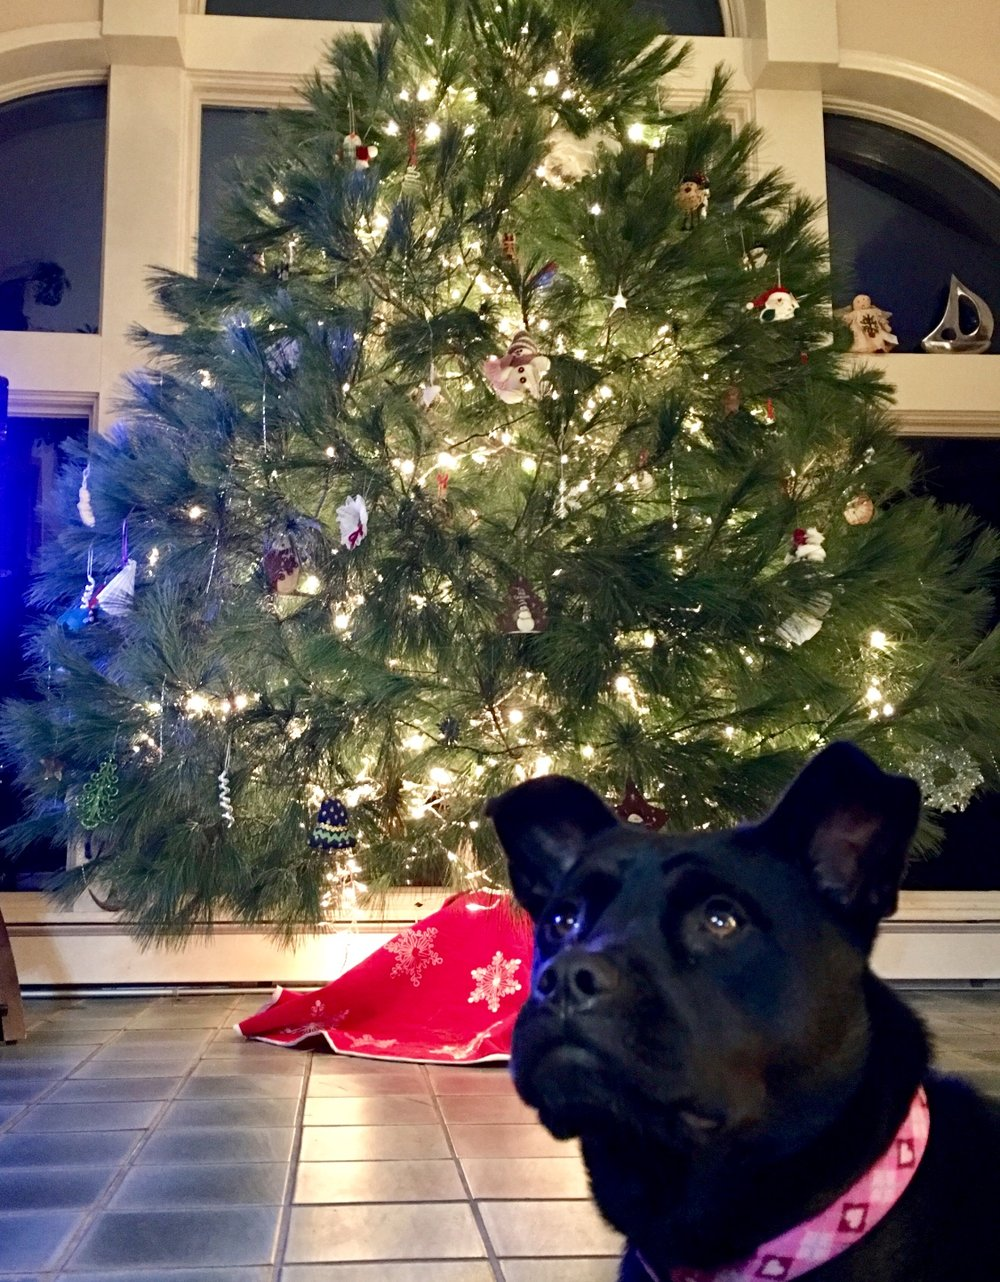 CiCi knows she is being watched closely to avoid any Christmas tree catastrophes!